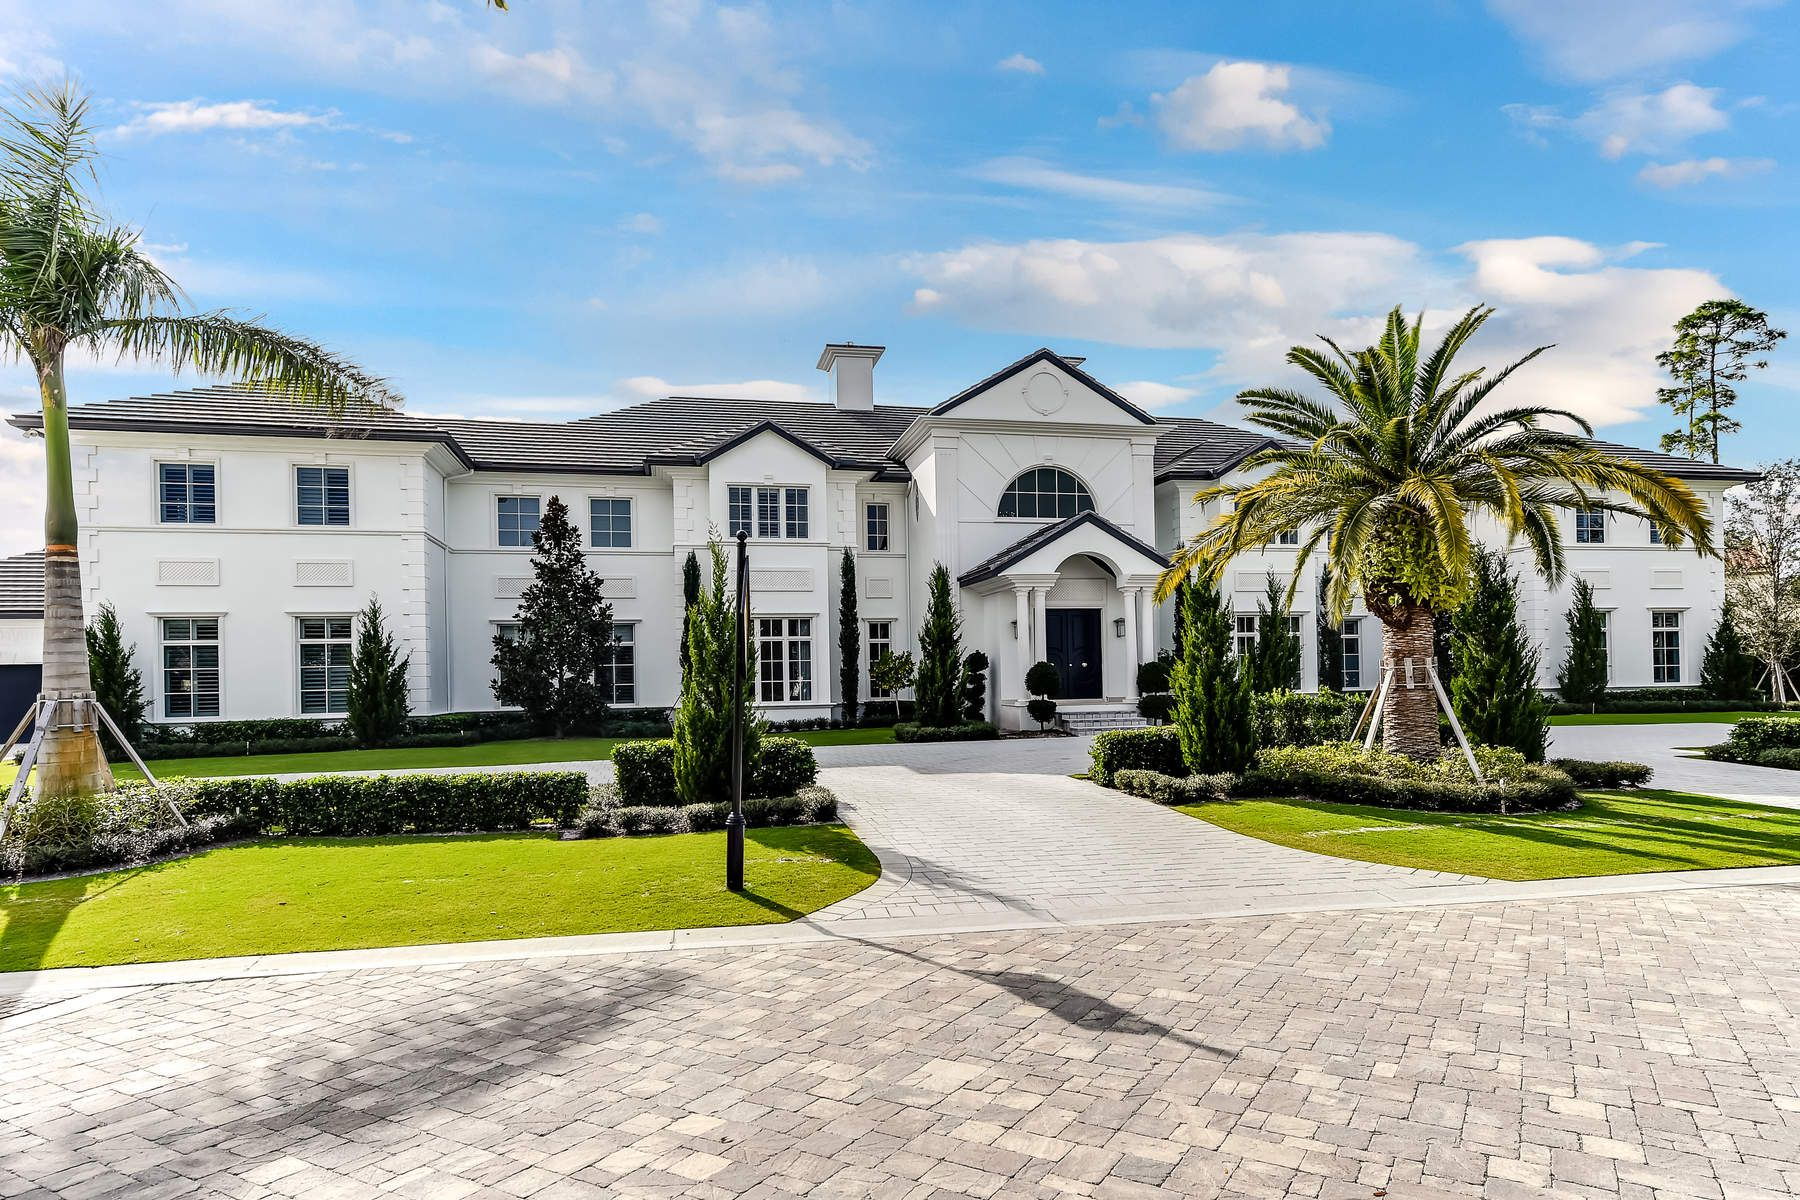 Single Family Home for Sale at New Custom Estate in Old Palm 12403 Hautree Ct, Palm Beach Gardens, Florida, 33418 United States